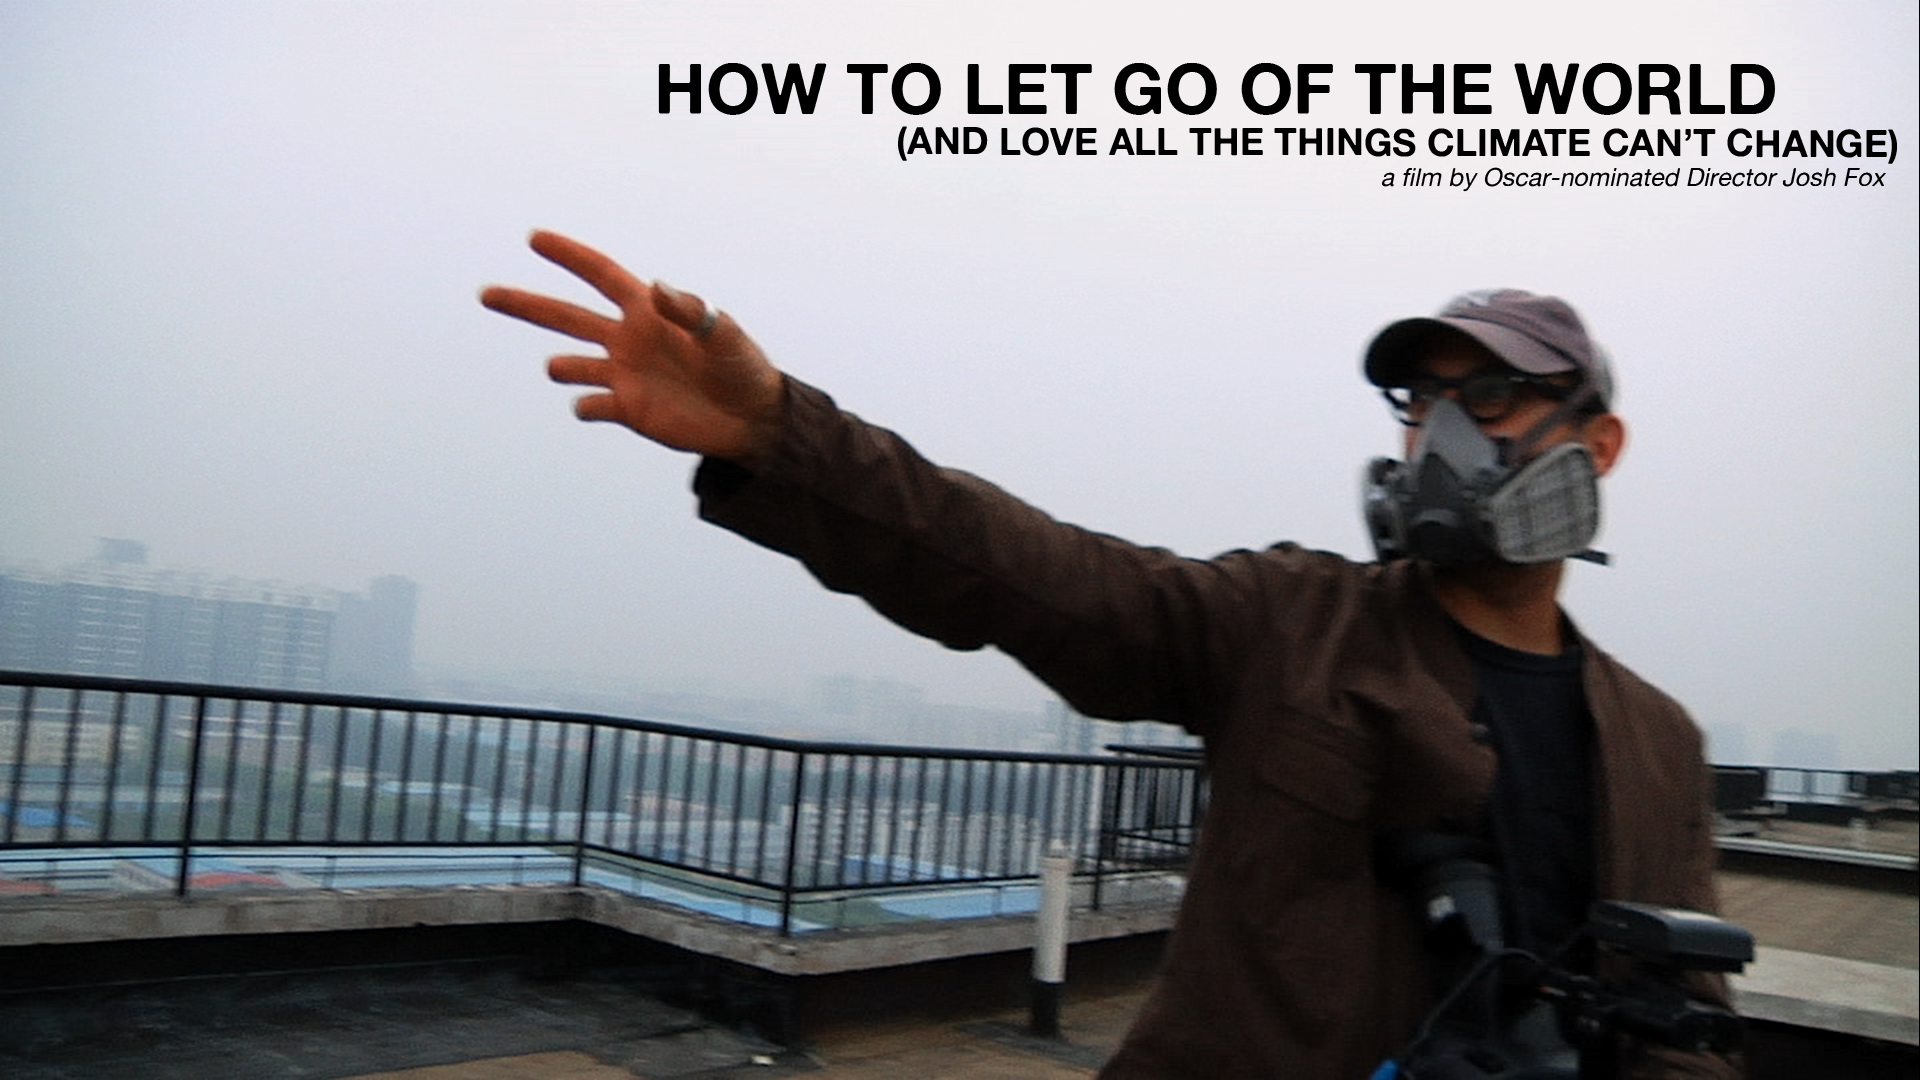 HOW_TO_LET_GO_1920x1080_BIG_FEATURED